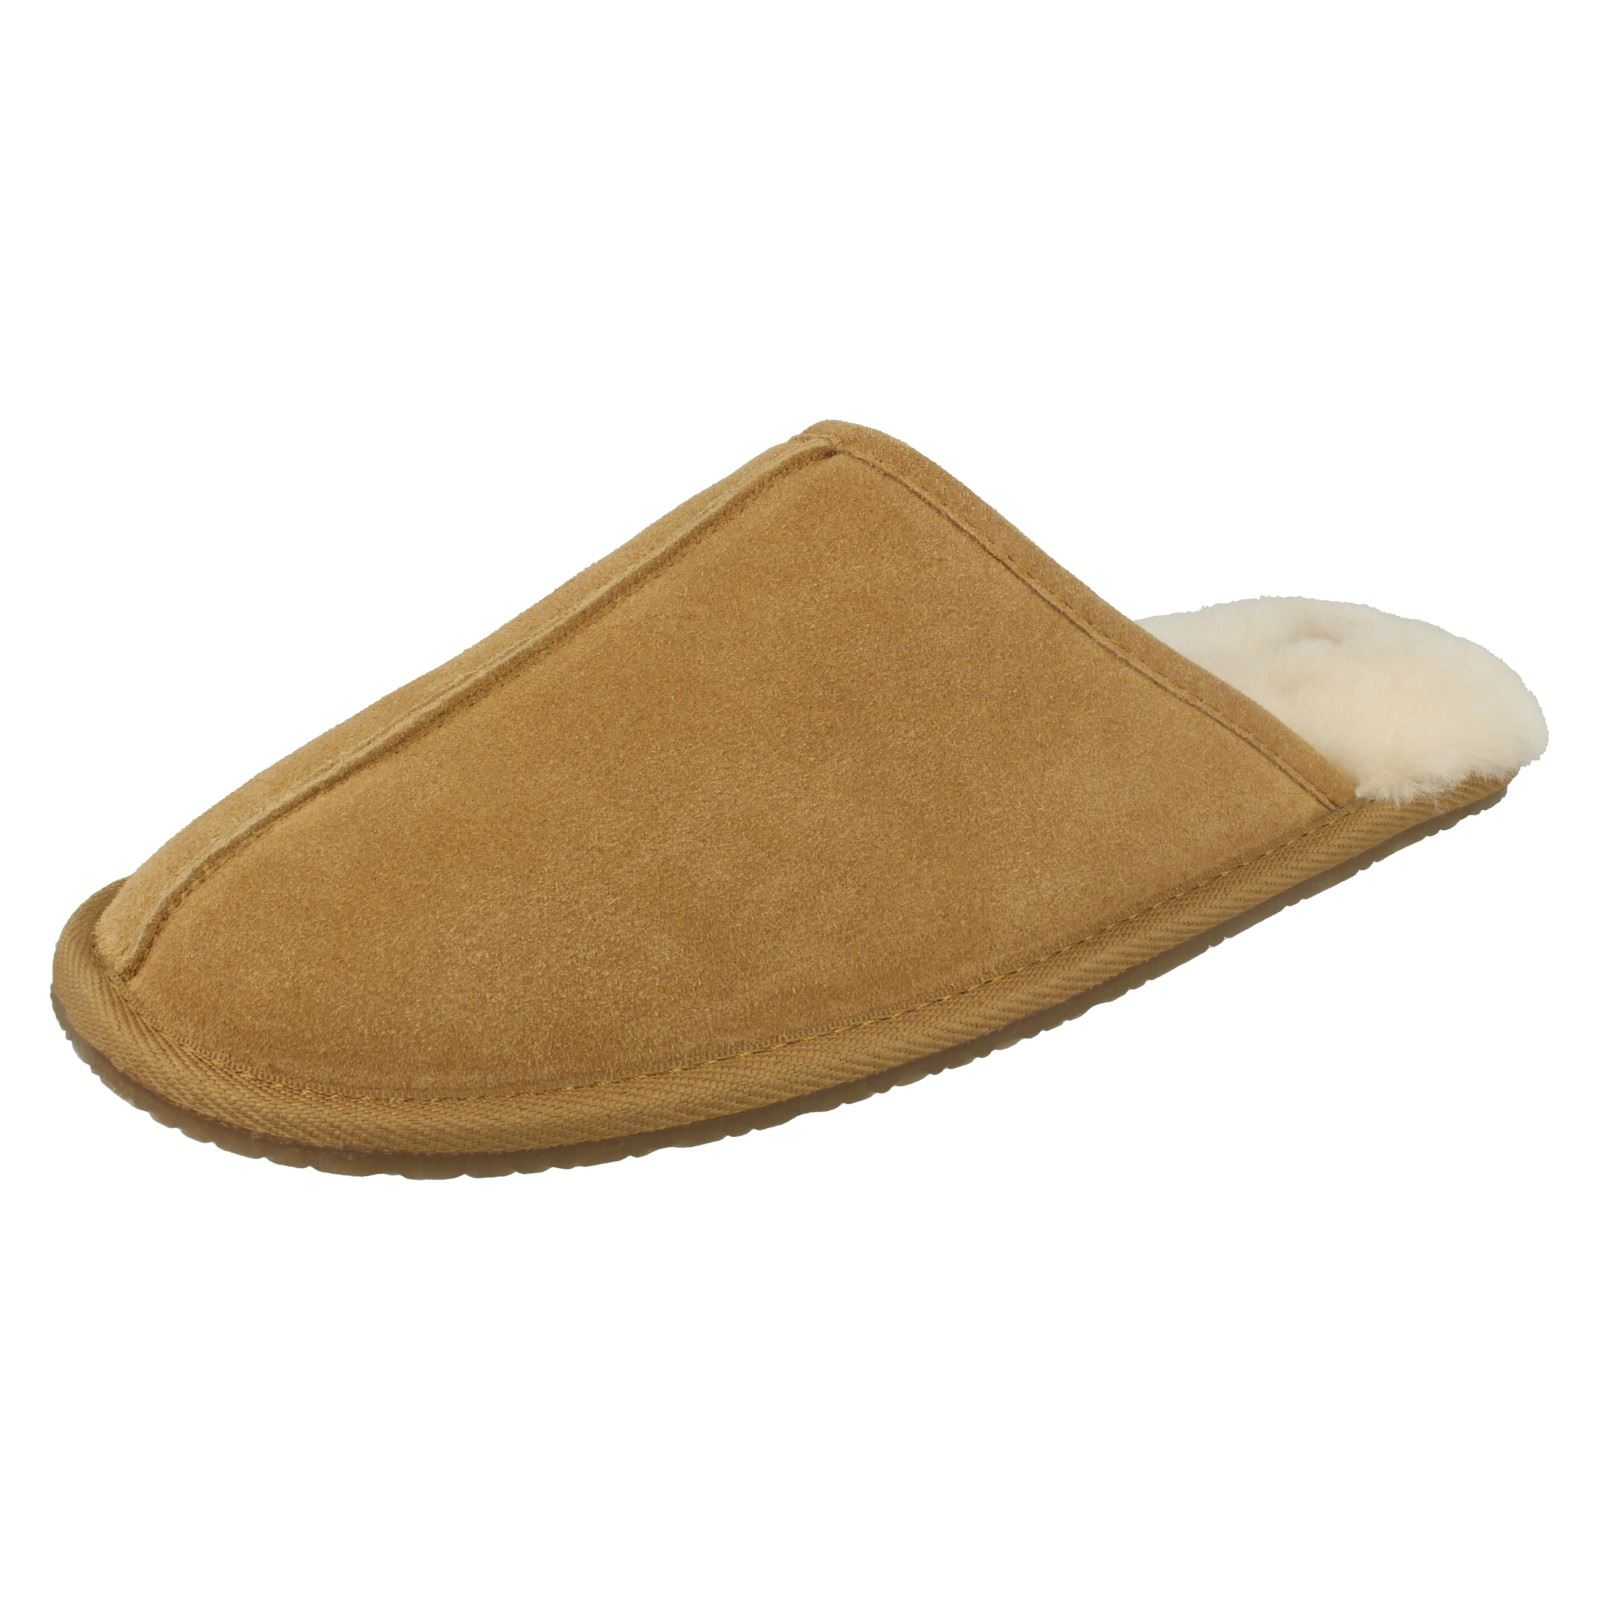 Mens Clarks Suede Leather Warm - Sheepskin Lined Mule Slippers - Warm Crackling Fire 82b41c